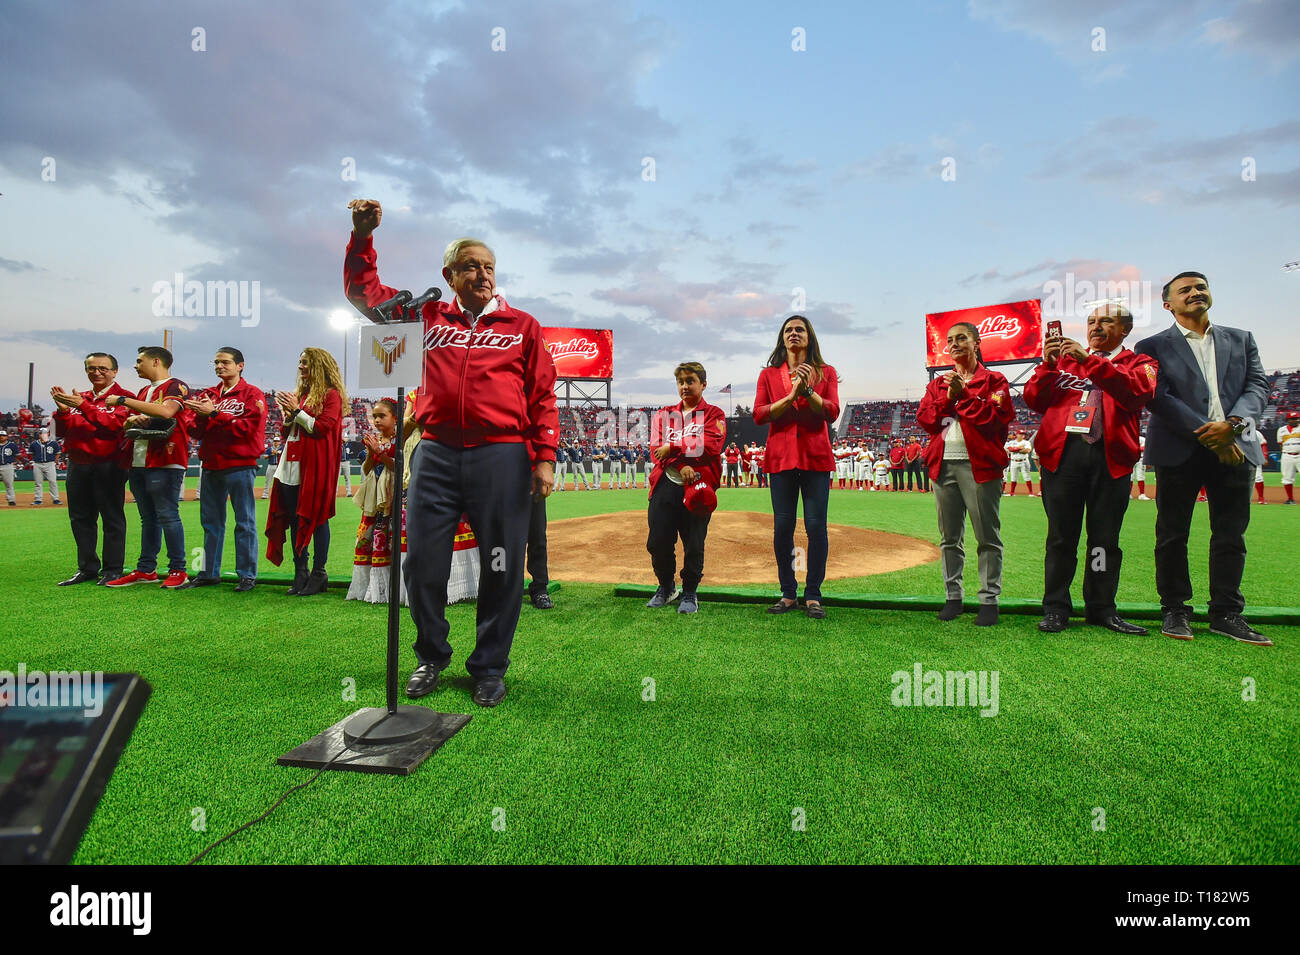 Mexico City, Mexico. 23rd Mar, 2019. Mexican President Andres Manuel Lopez Obrador during the opening ceremony at the Alfredo Harp Helu Baseball Stadium, home of the Mexico City Red Devils March 23, 2019 in Mexico City, Mexico. Obrador who has enjoyed soaring approval ratings was booed and jeered by the hostile crowd in a rare display of public animosity for the popular president. Credit: Planetpix/Alamy Live News - Stock Image